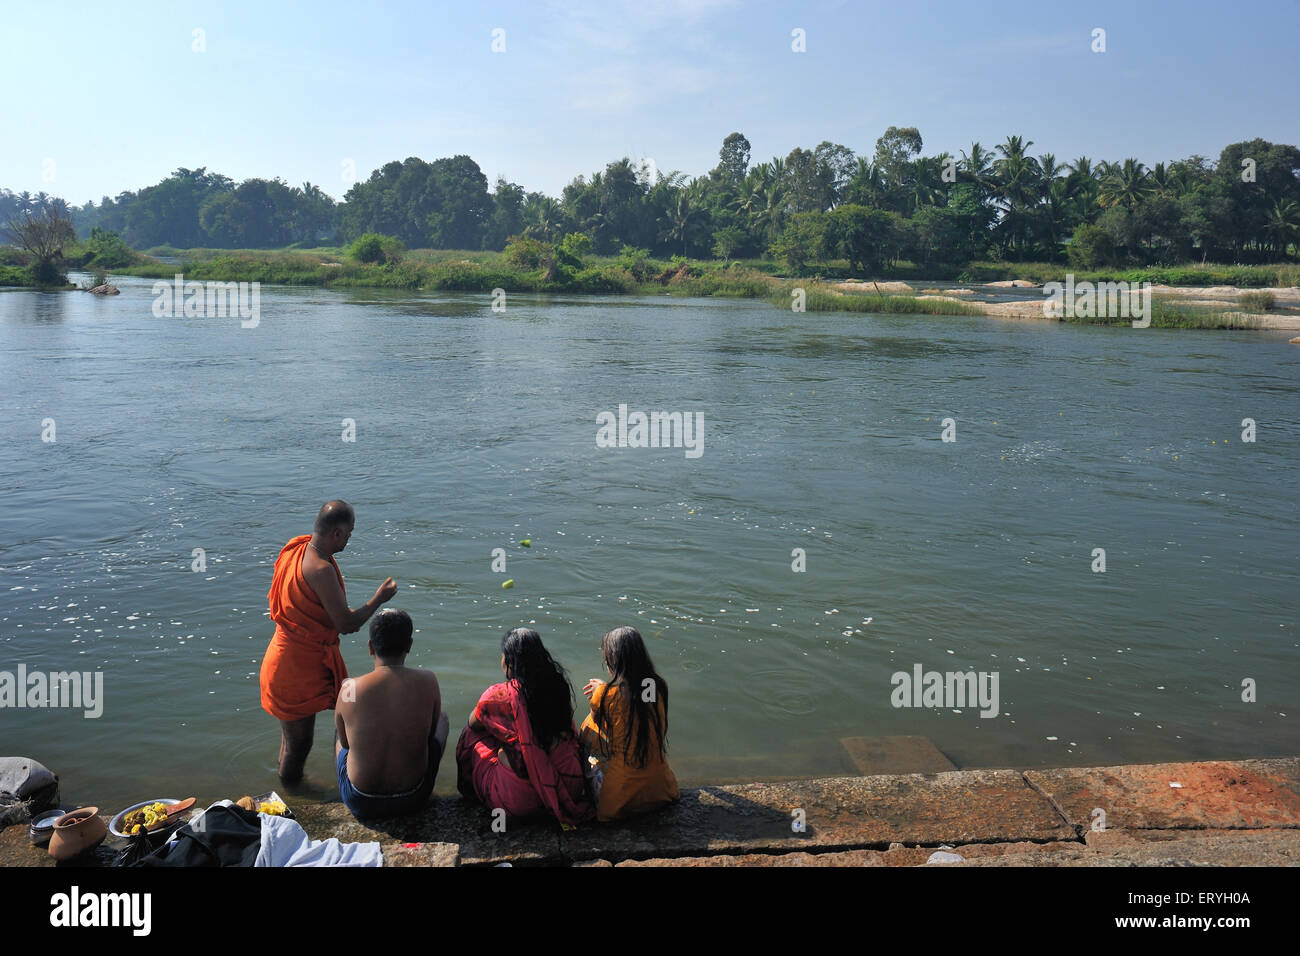 Riverbank of kaver ; Srirangapatna ; Mysore ; Karnataka ; India - Stock Image